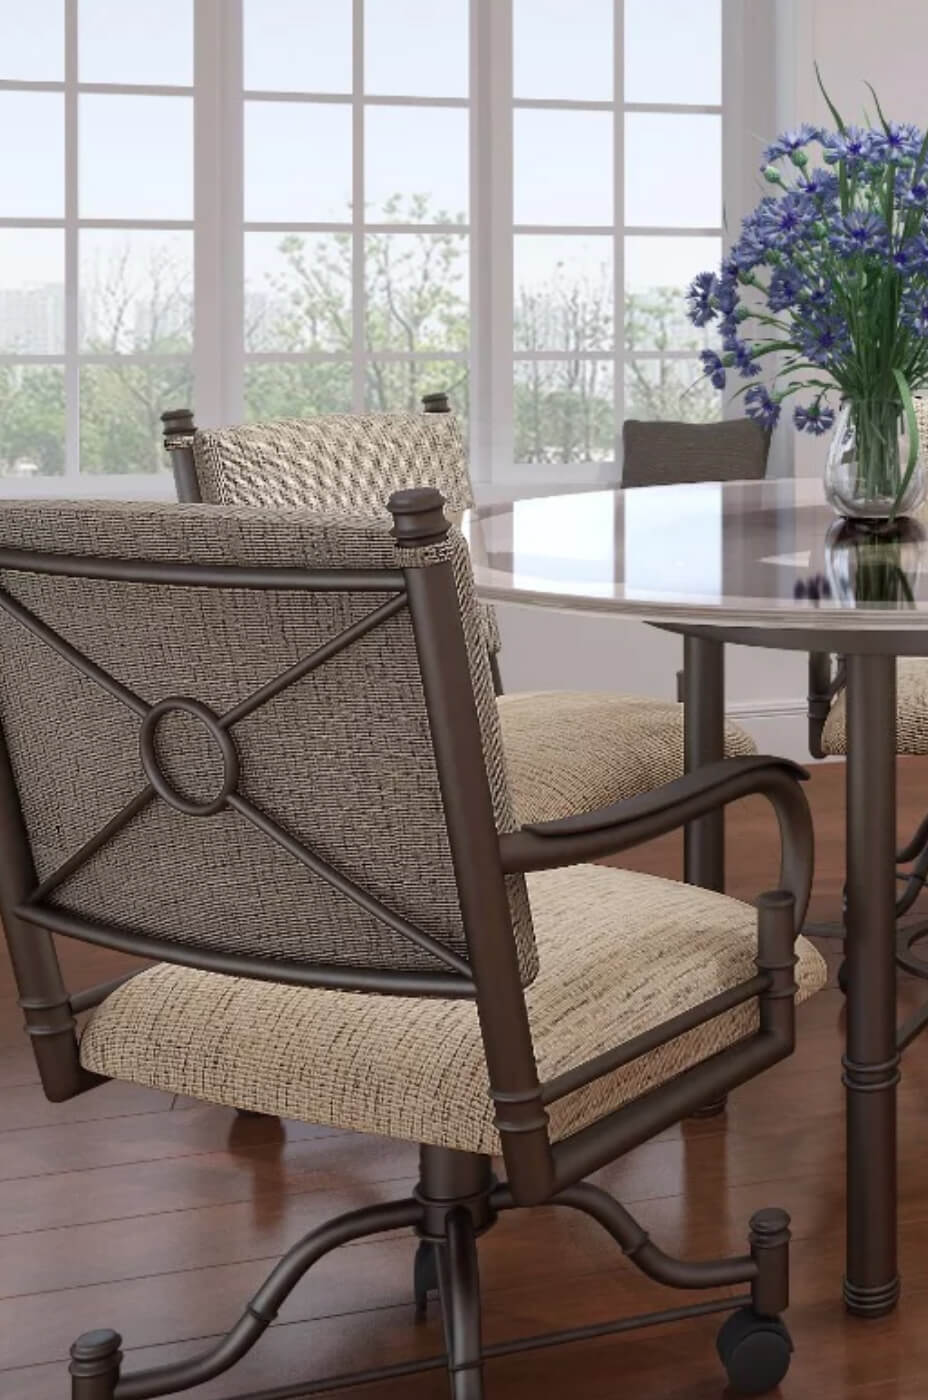 Callee's Burnet Tilt Swivel Dining Chair with Arms and Rolling Casters